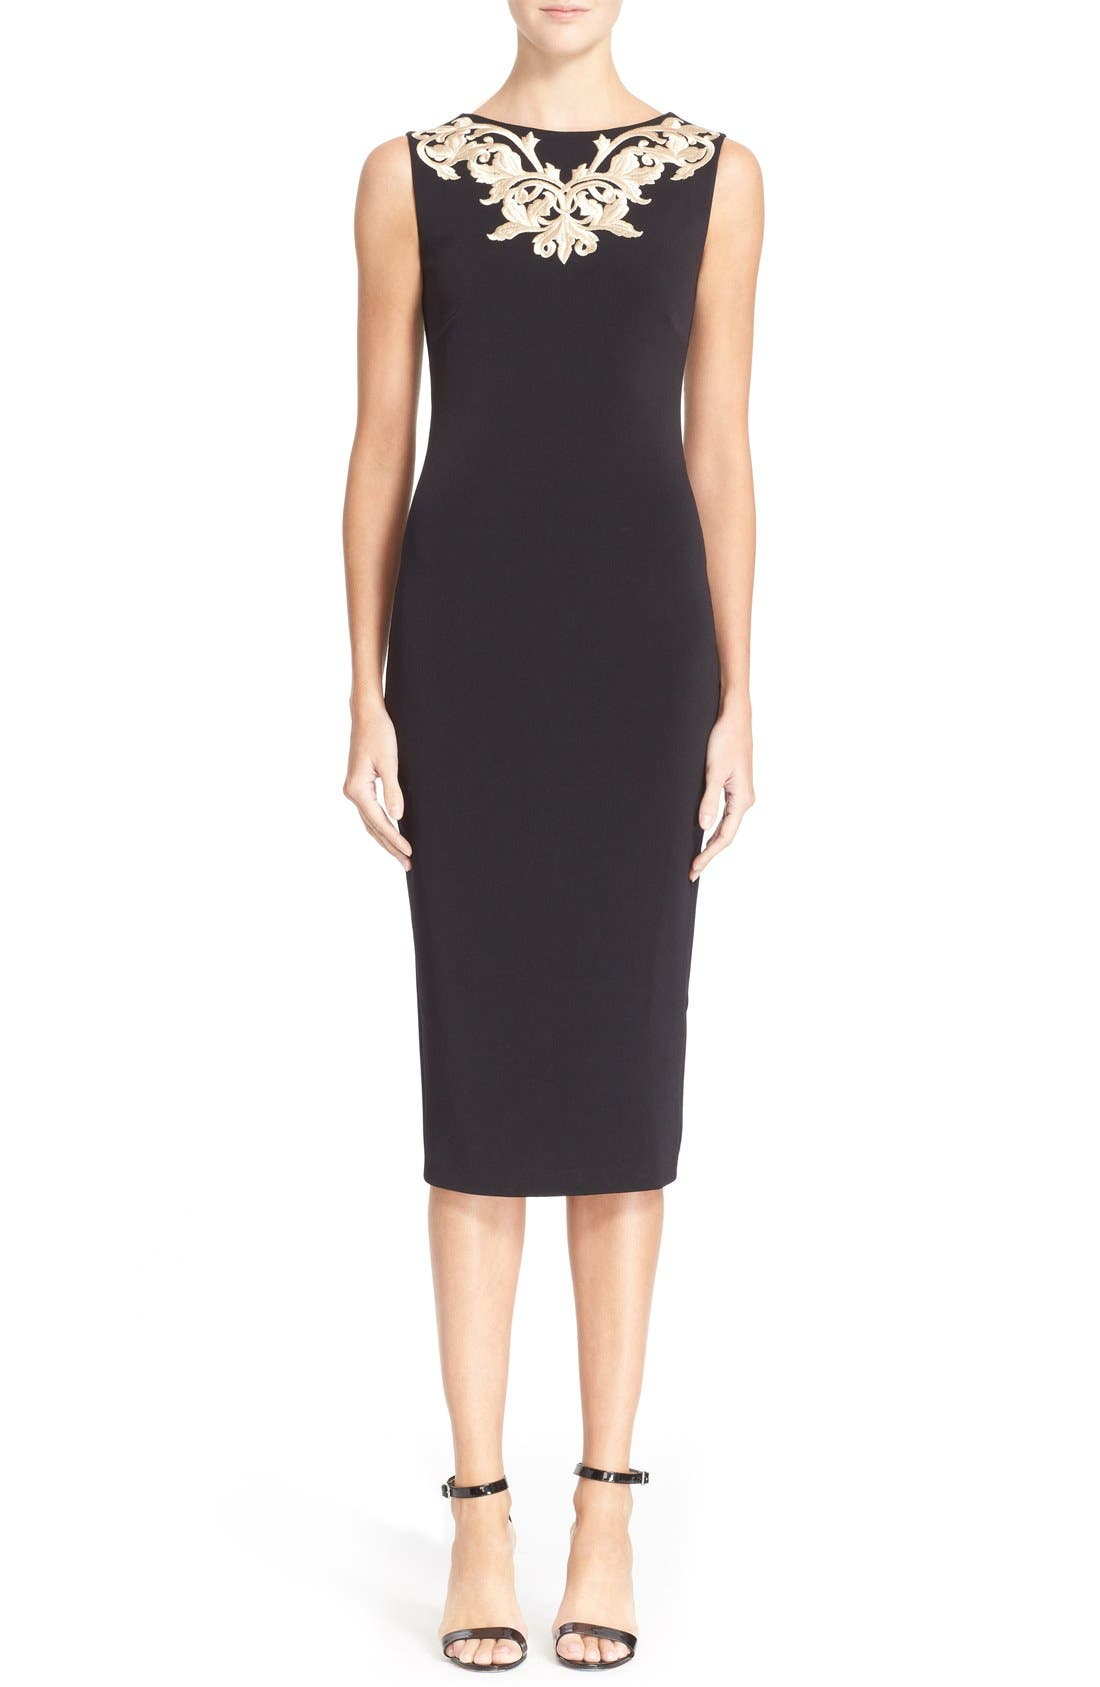 Alternate Image 1 Selected - Ted Baker London 'Tammara' Embroidered Midi Sheath Dress